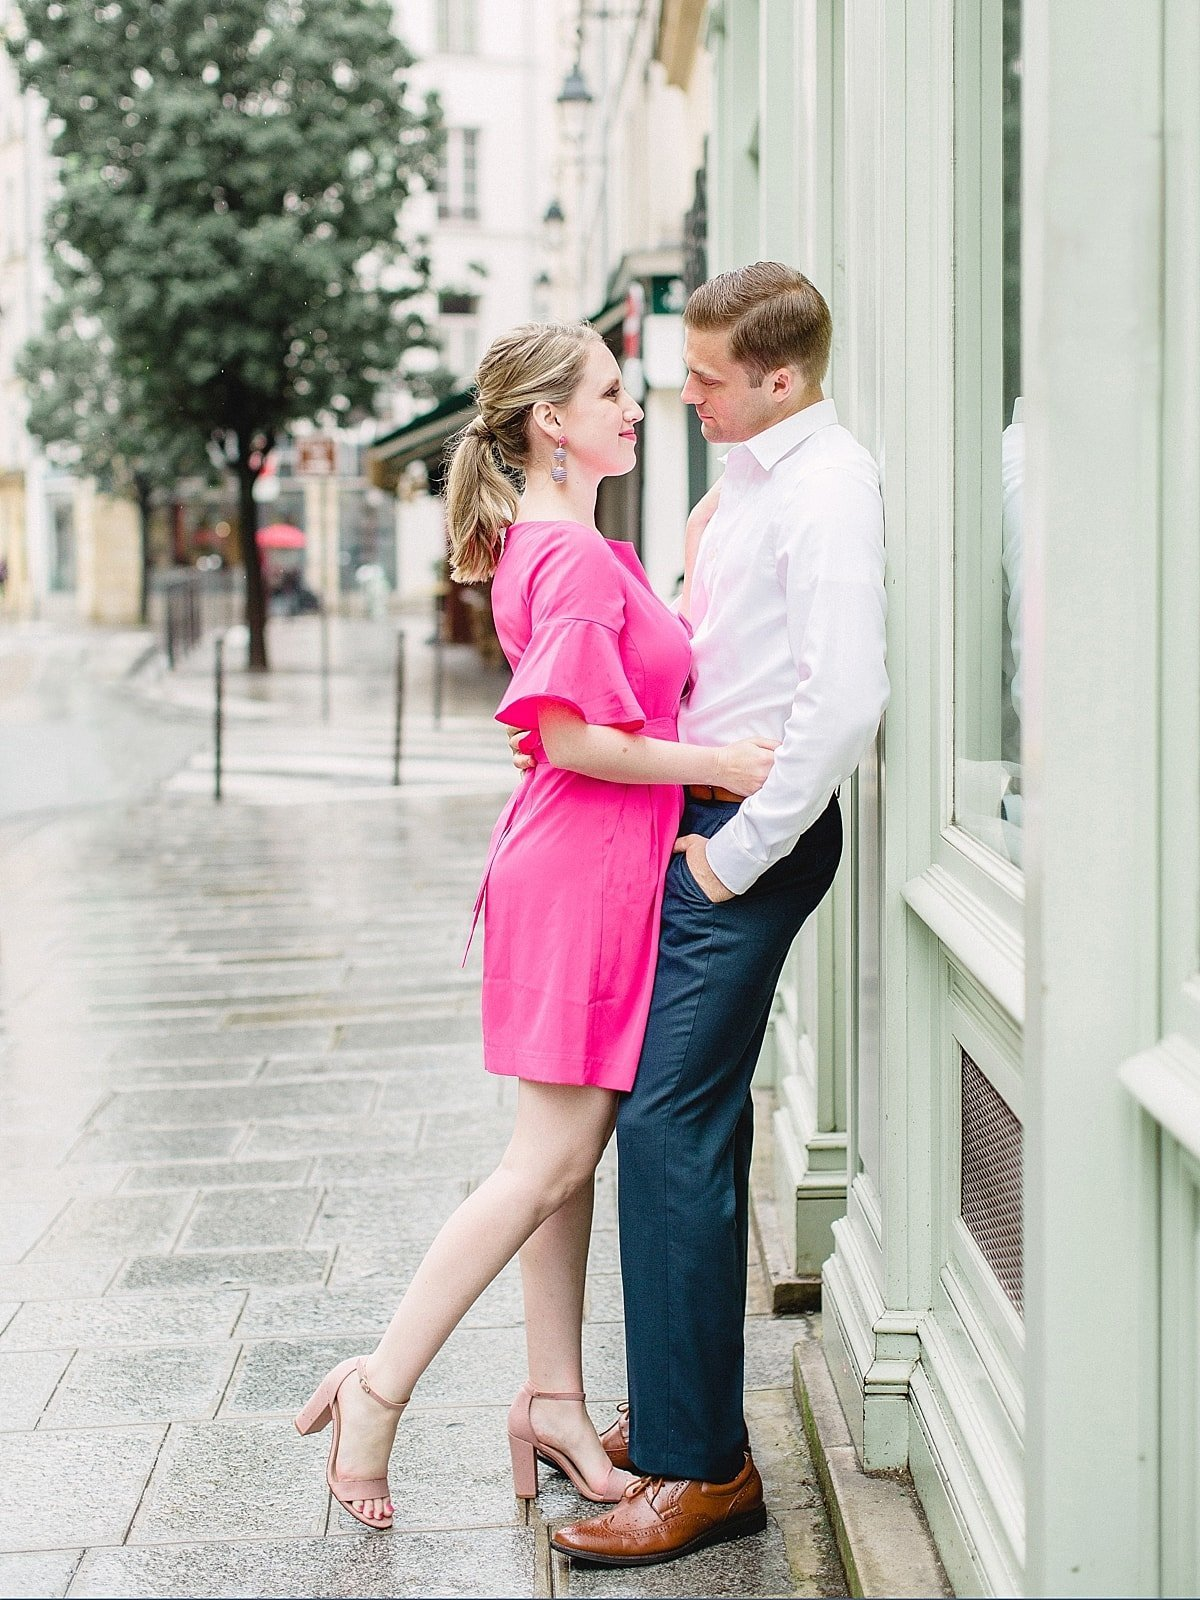 paris-photo-session-anniversary-alicia-yarrish-photography_36